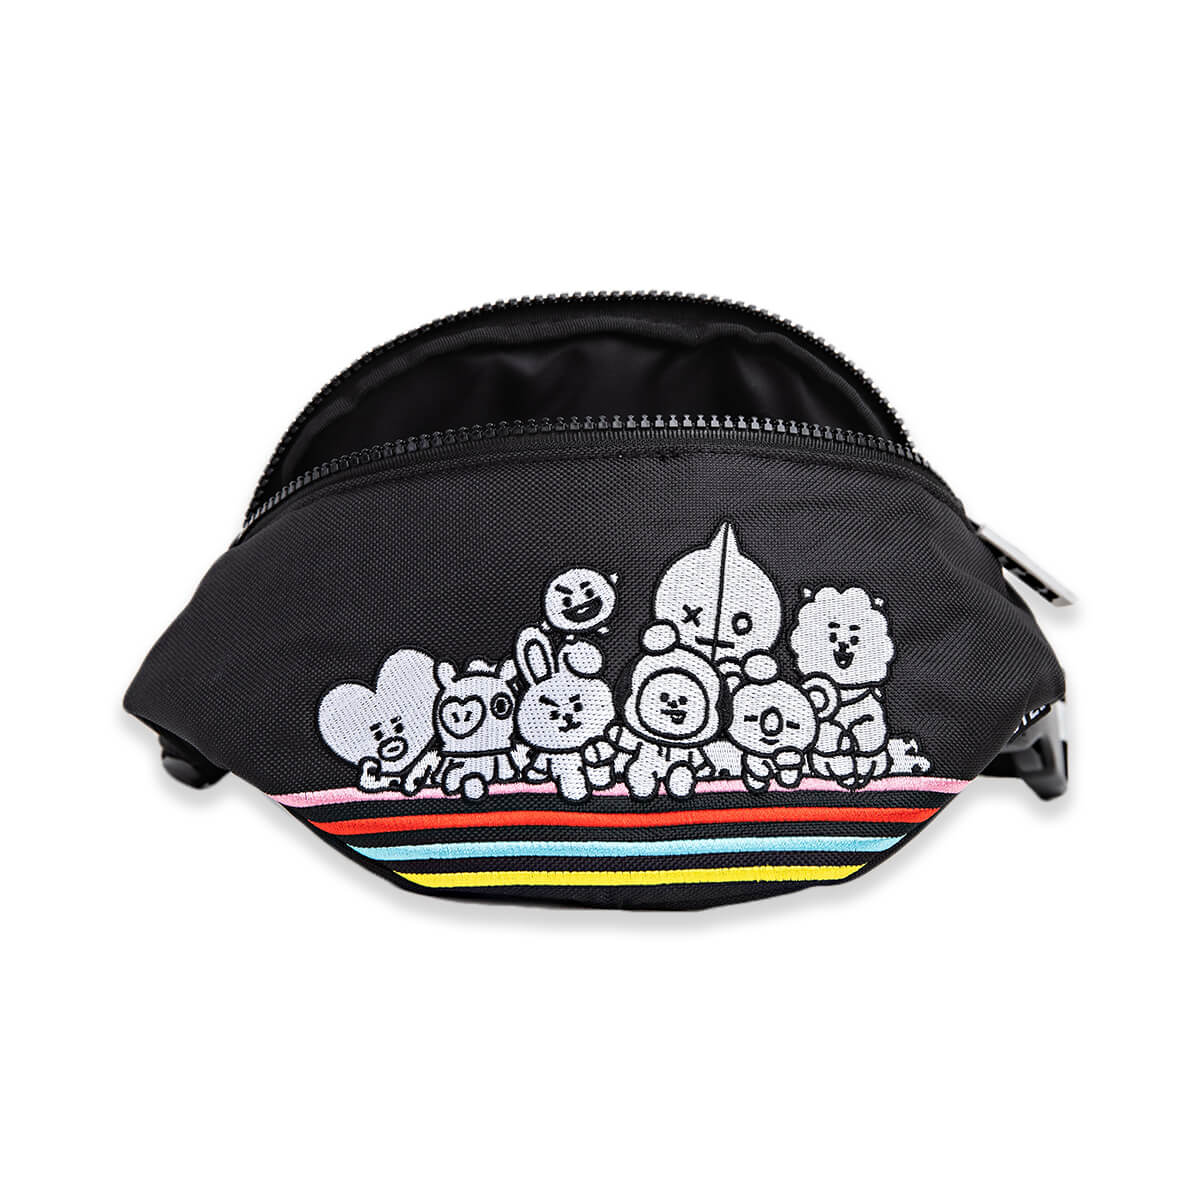 BT21 Group Embroidered Nylon Fanny Pack